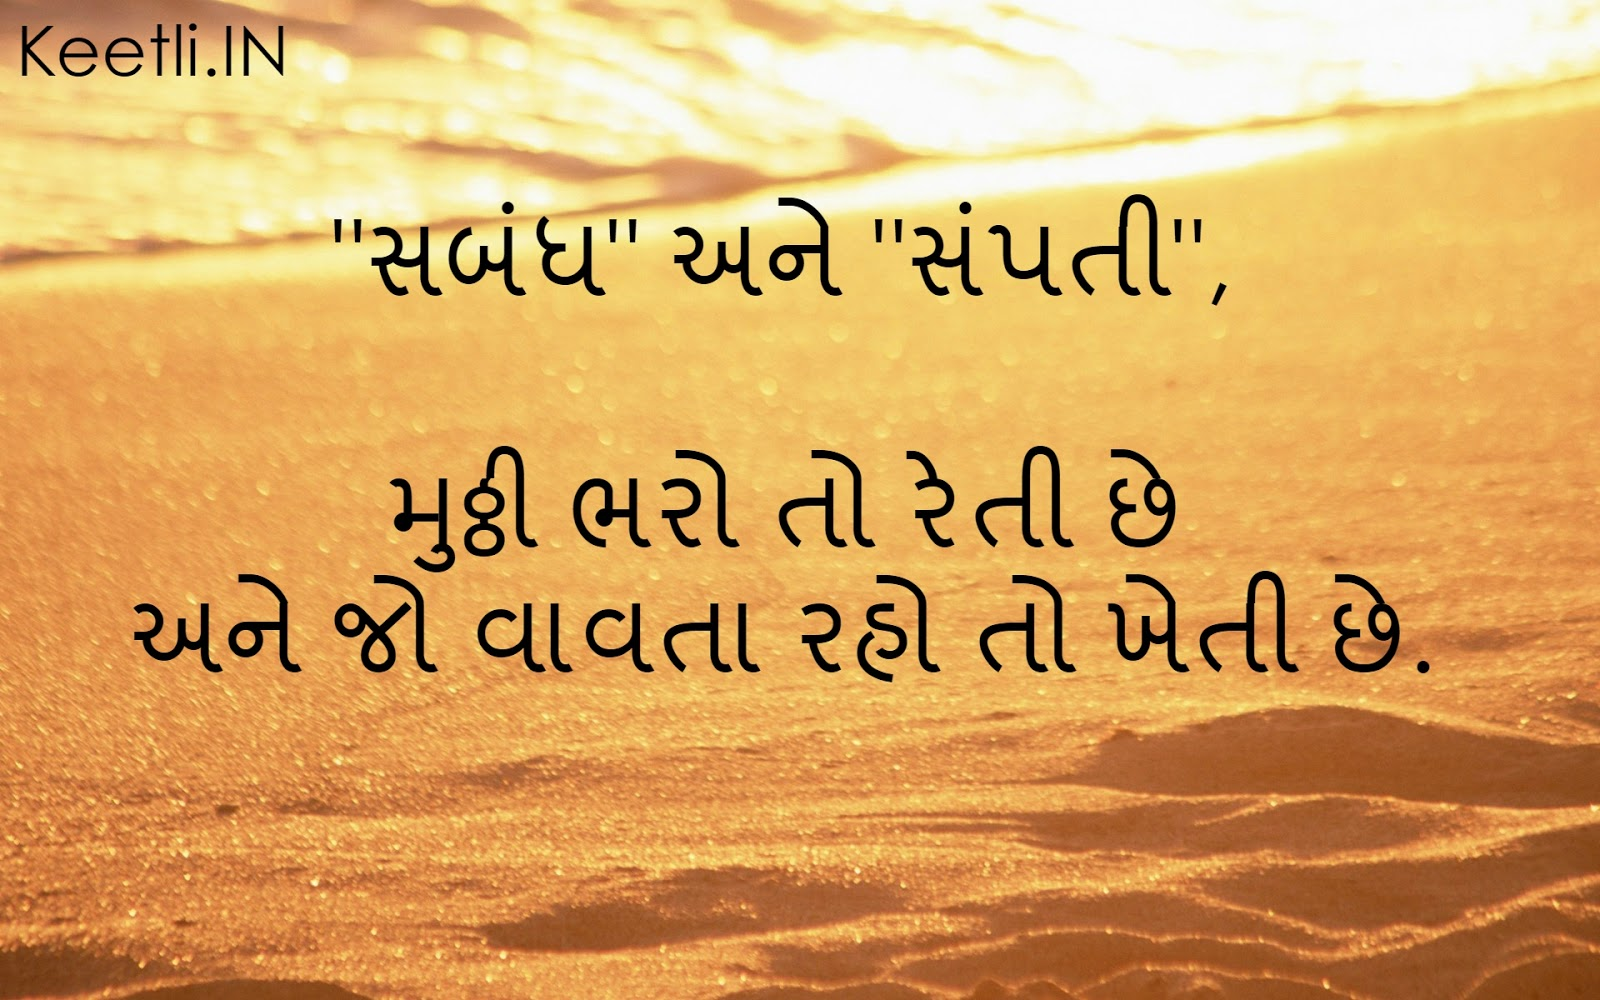 Motivational-Gujarati-Suvichar-14.jpg